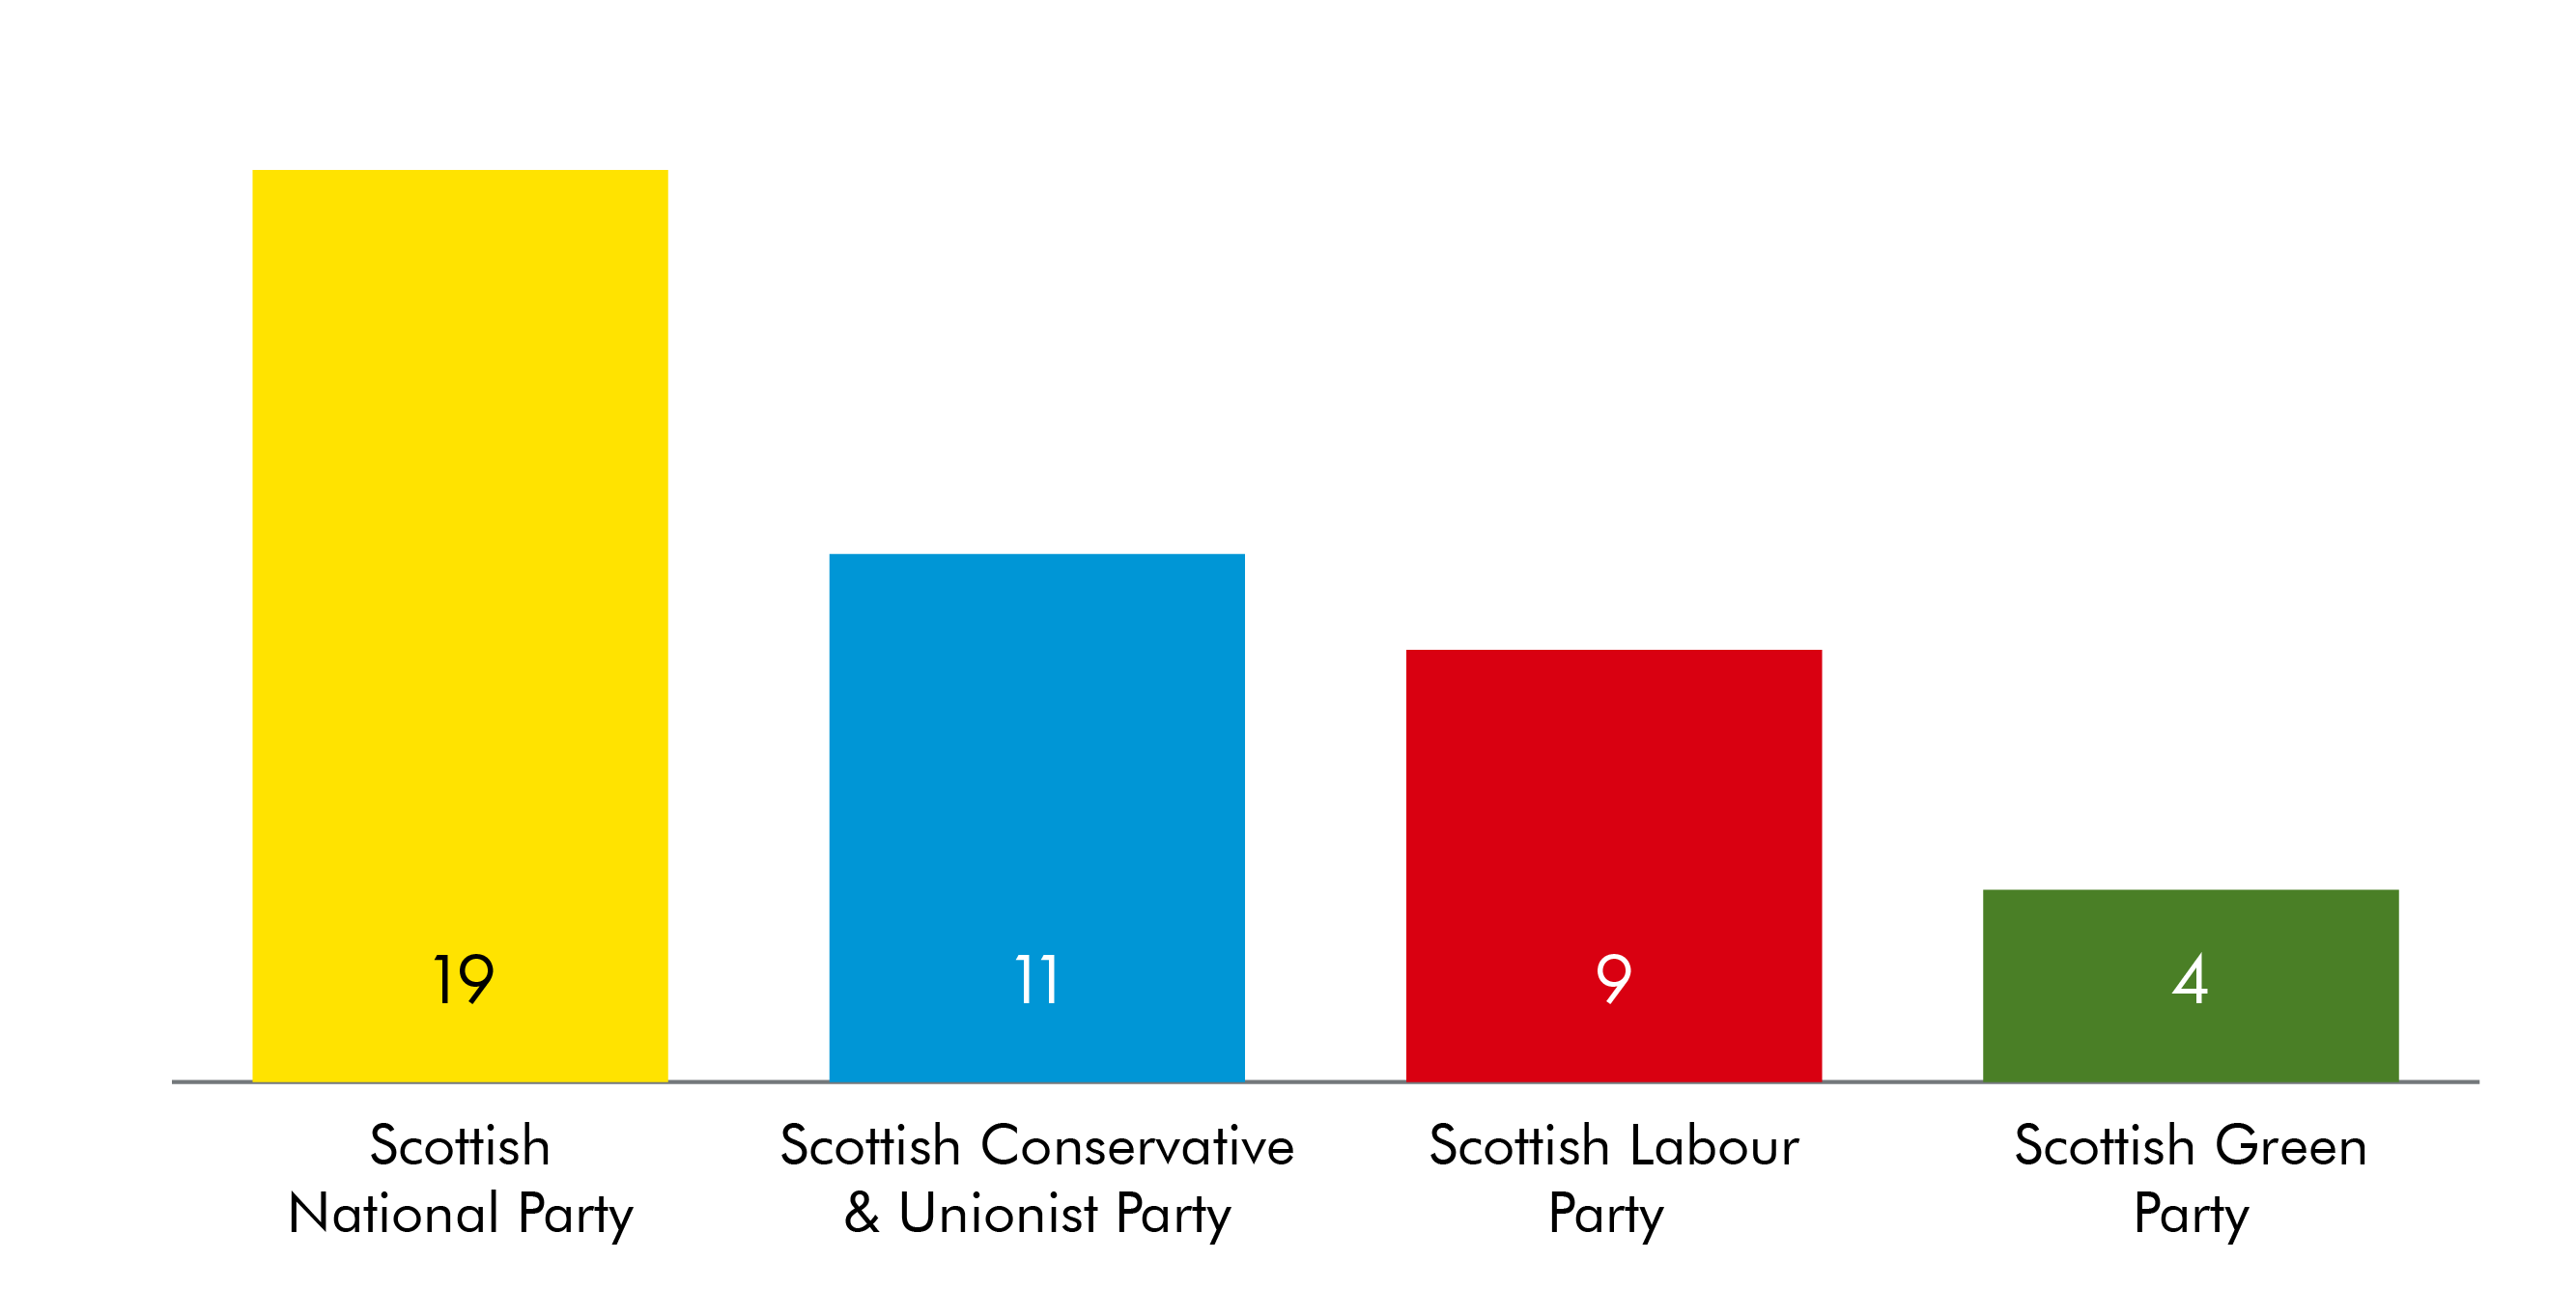 The SNP have 19 new member, the Conservatives 11, Labour 9 and the Green Party 4